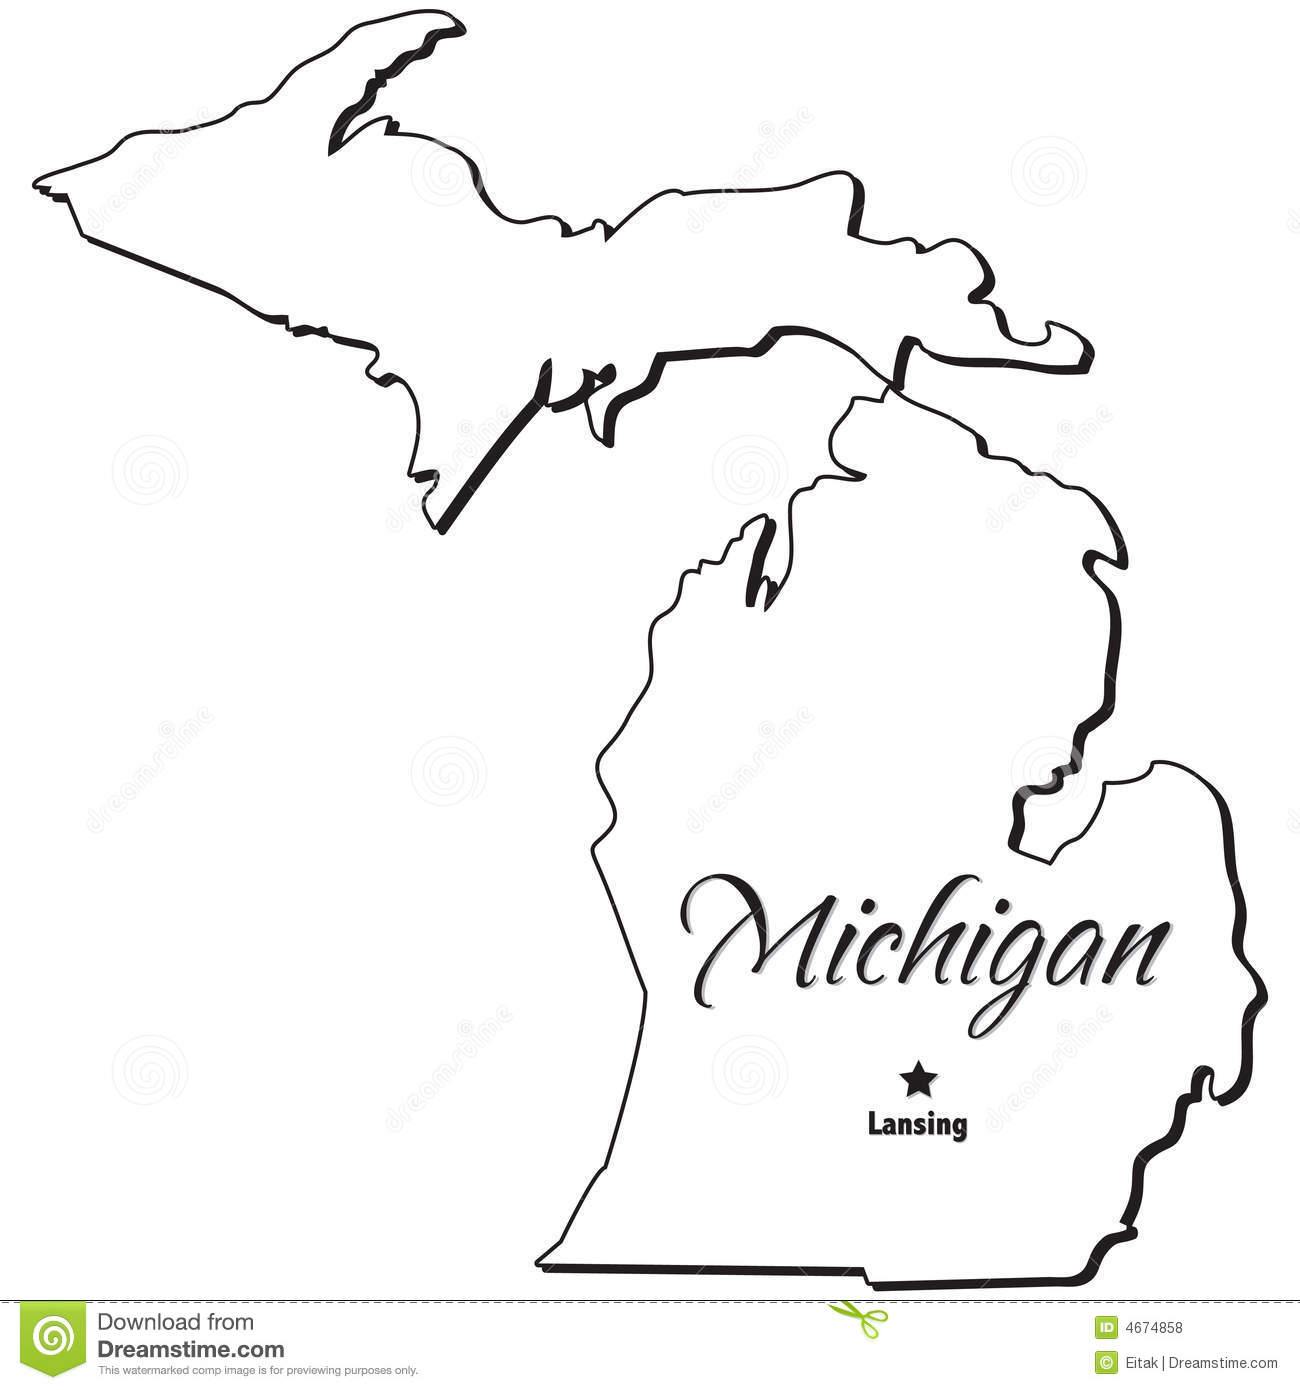 Michigan clipart. State outline